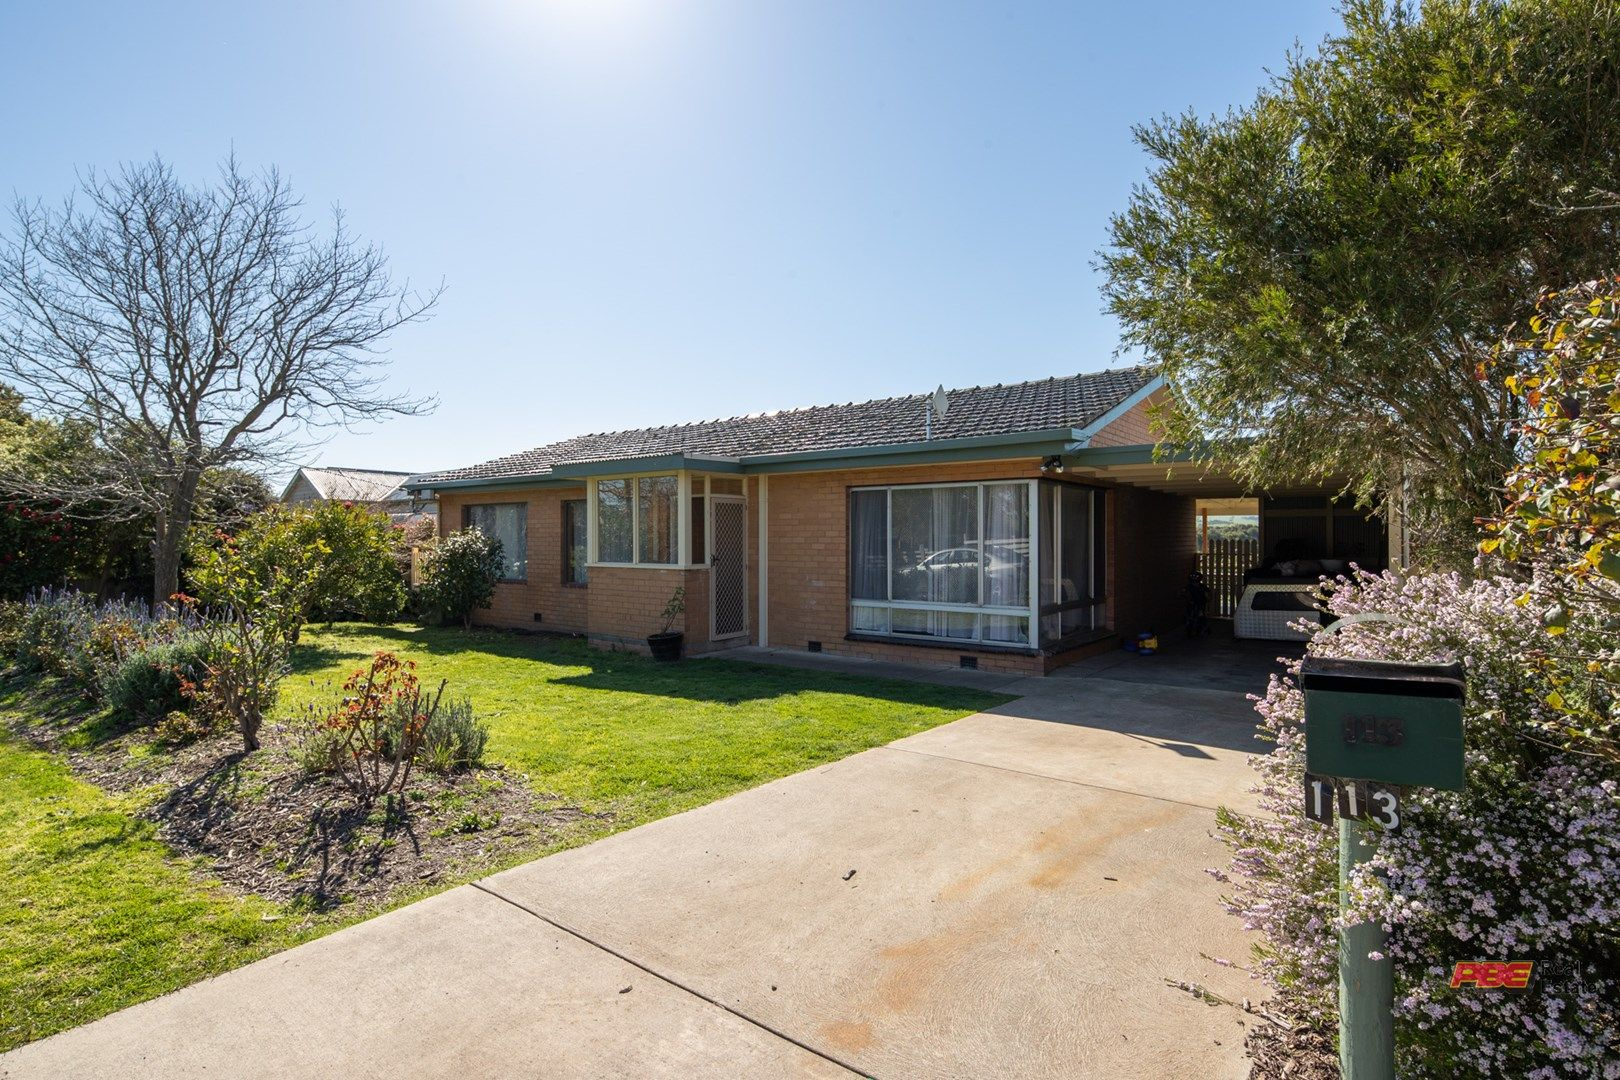 113 Archies Creek Road, Archies Creek VIC 3995, Image 0